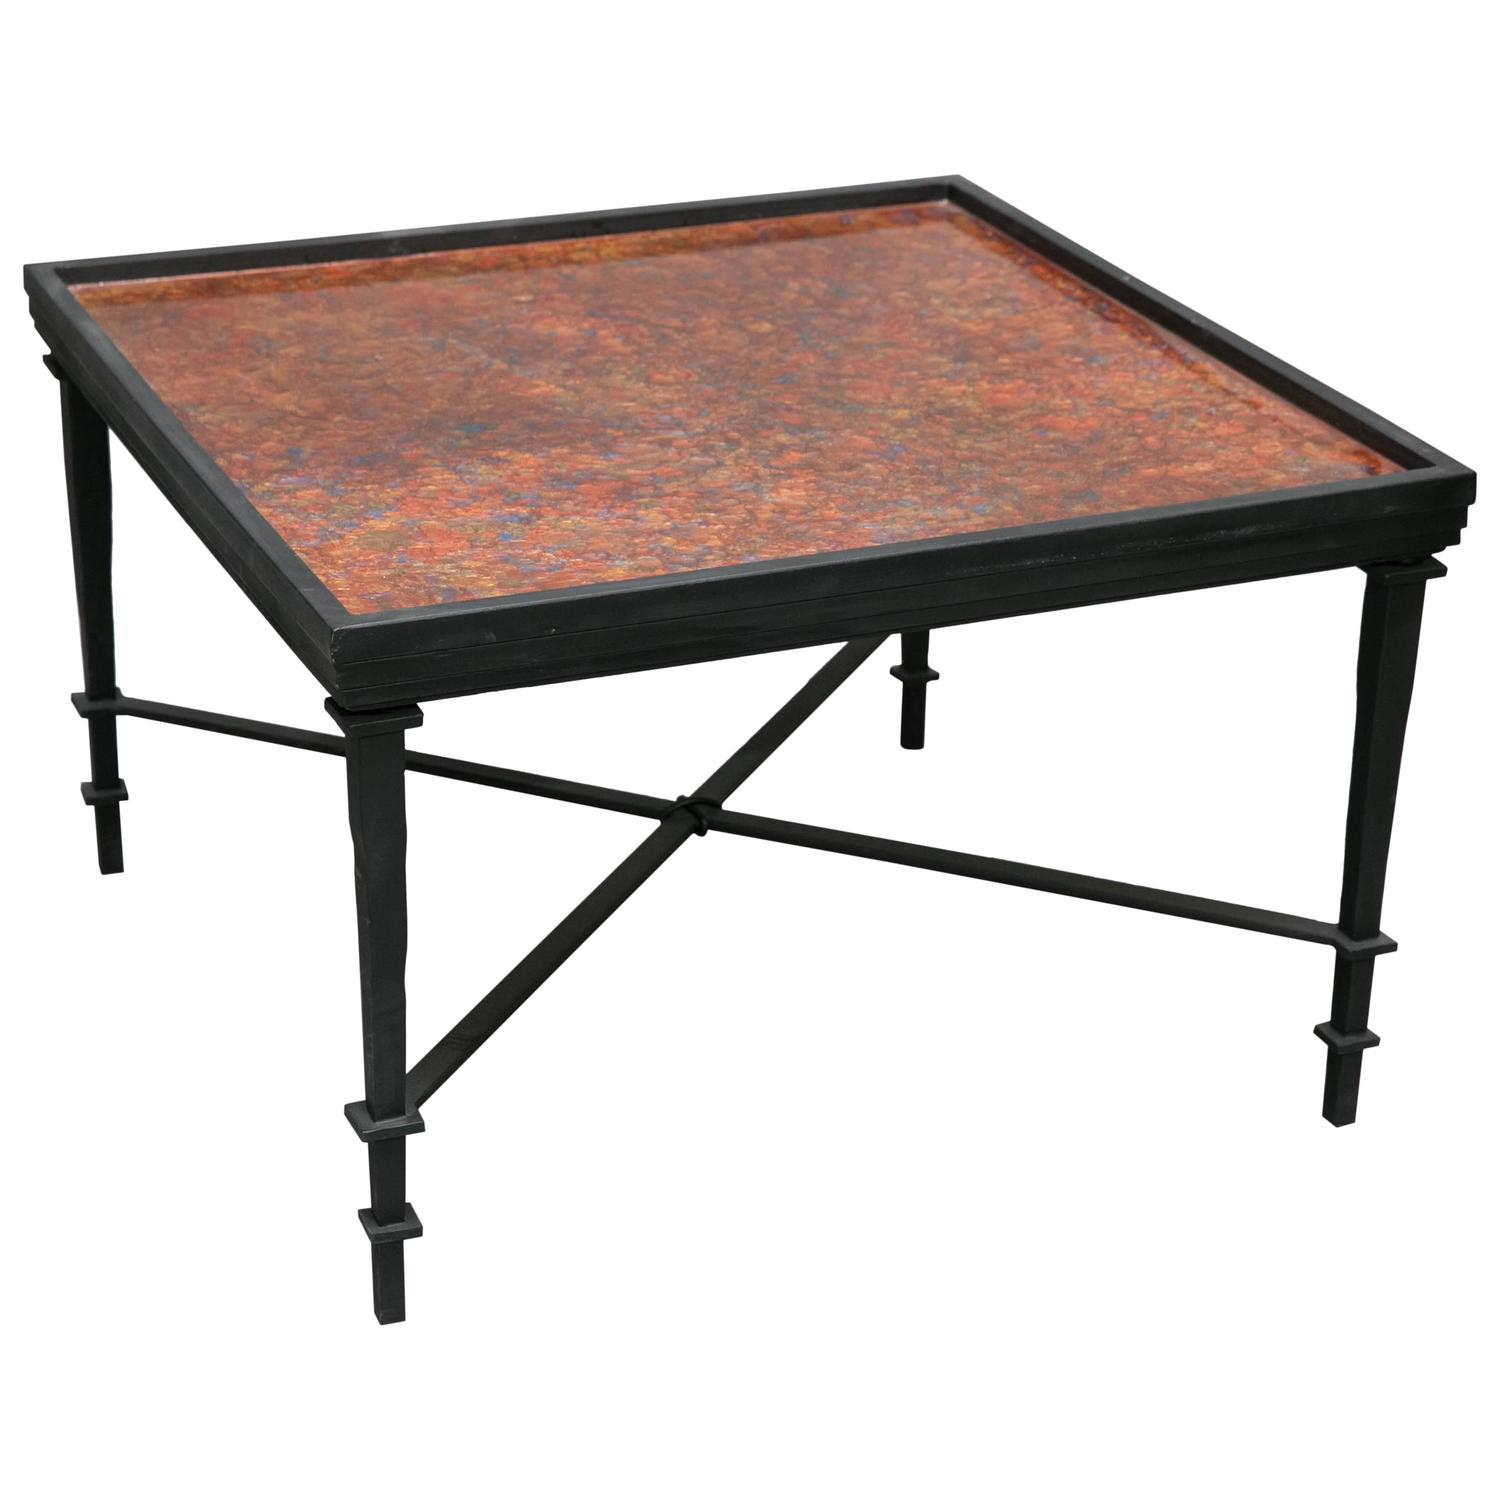 William Loyd Hand Painted Coffee Table For Sale At 1stdibs